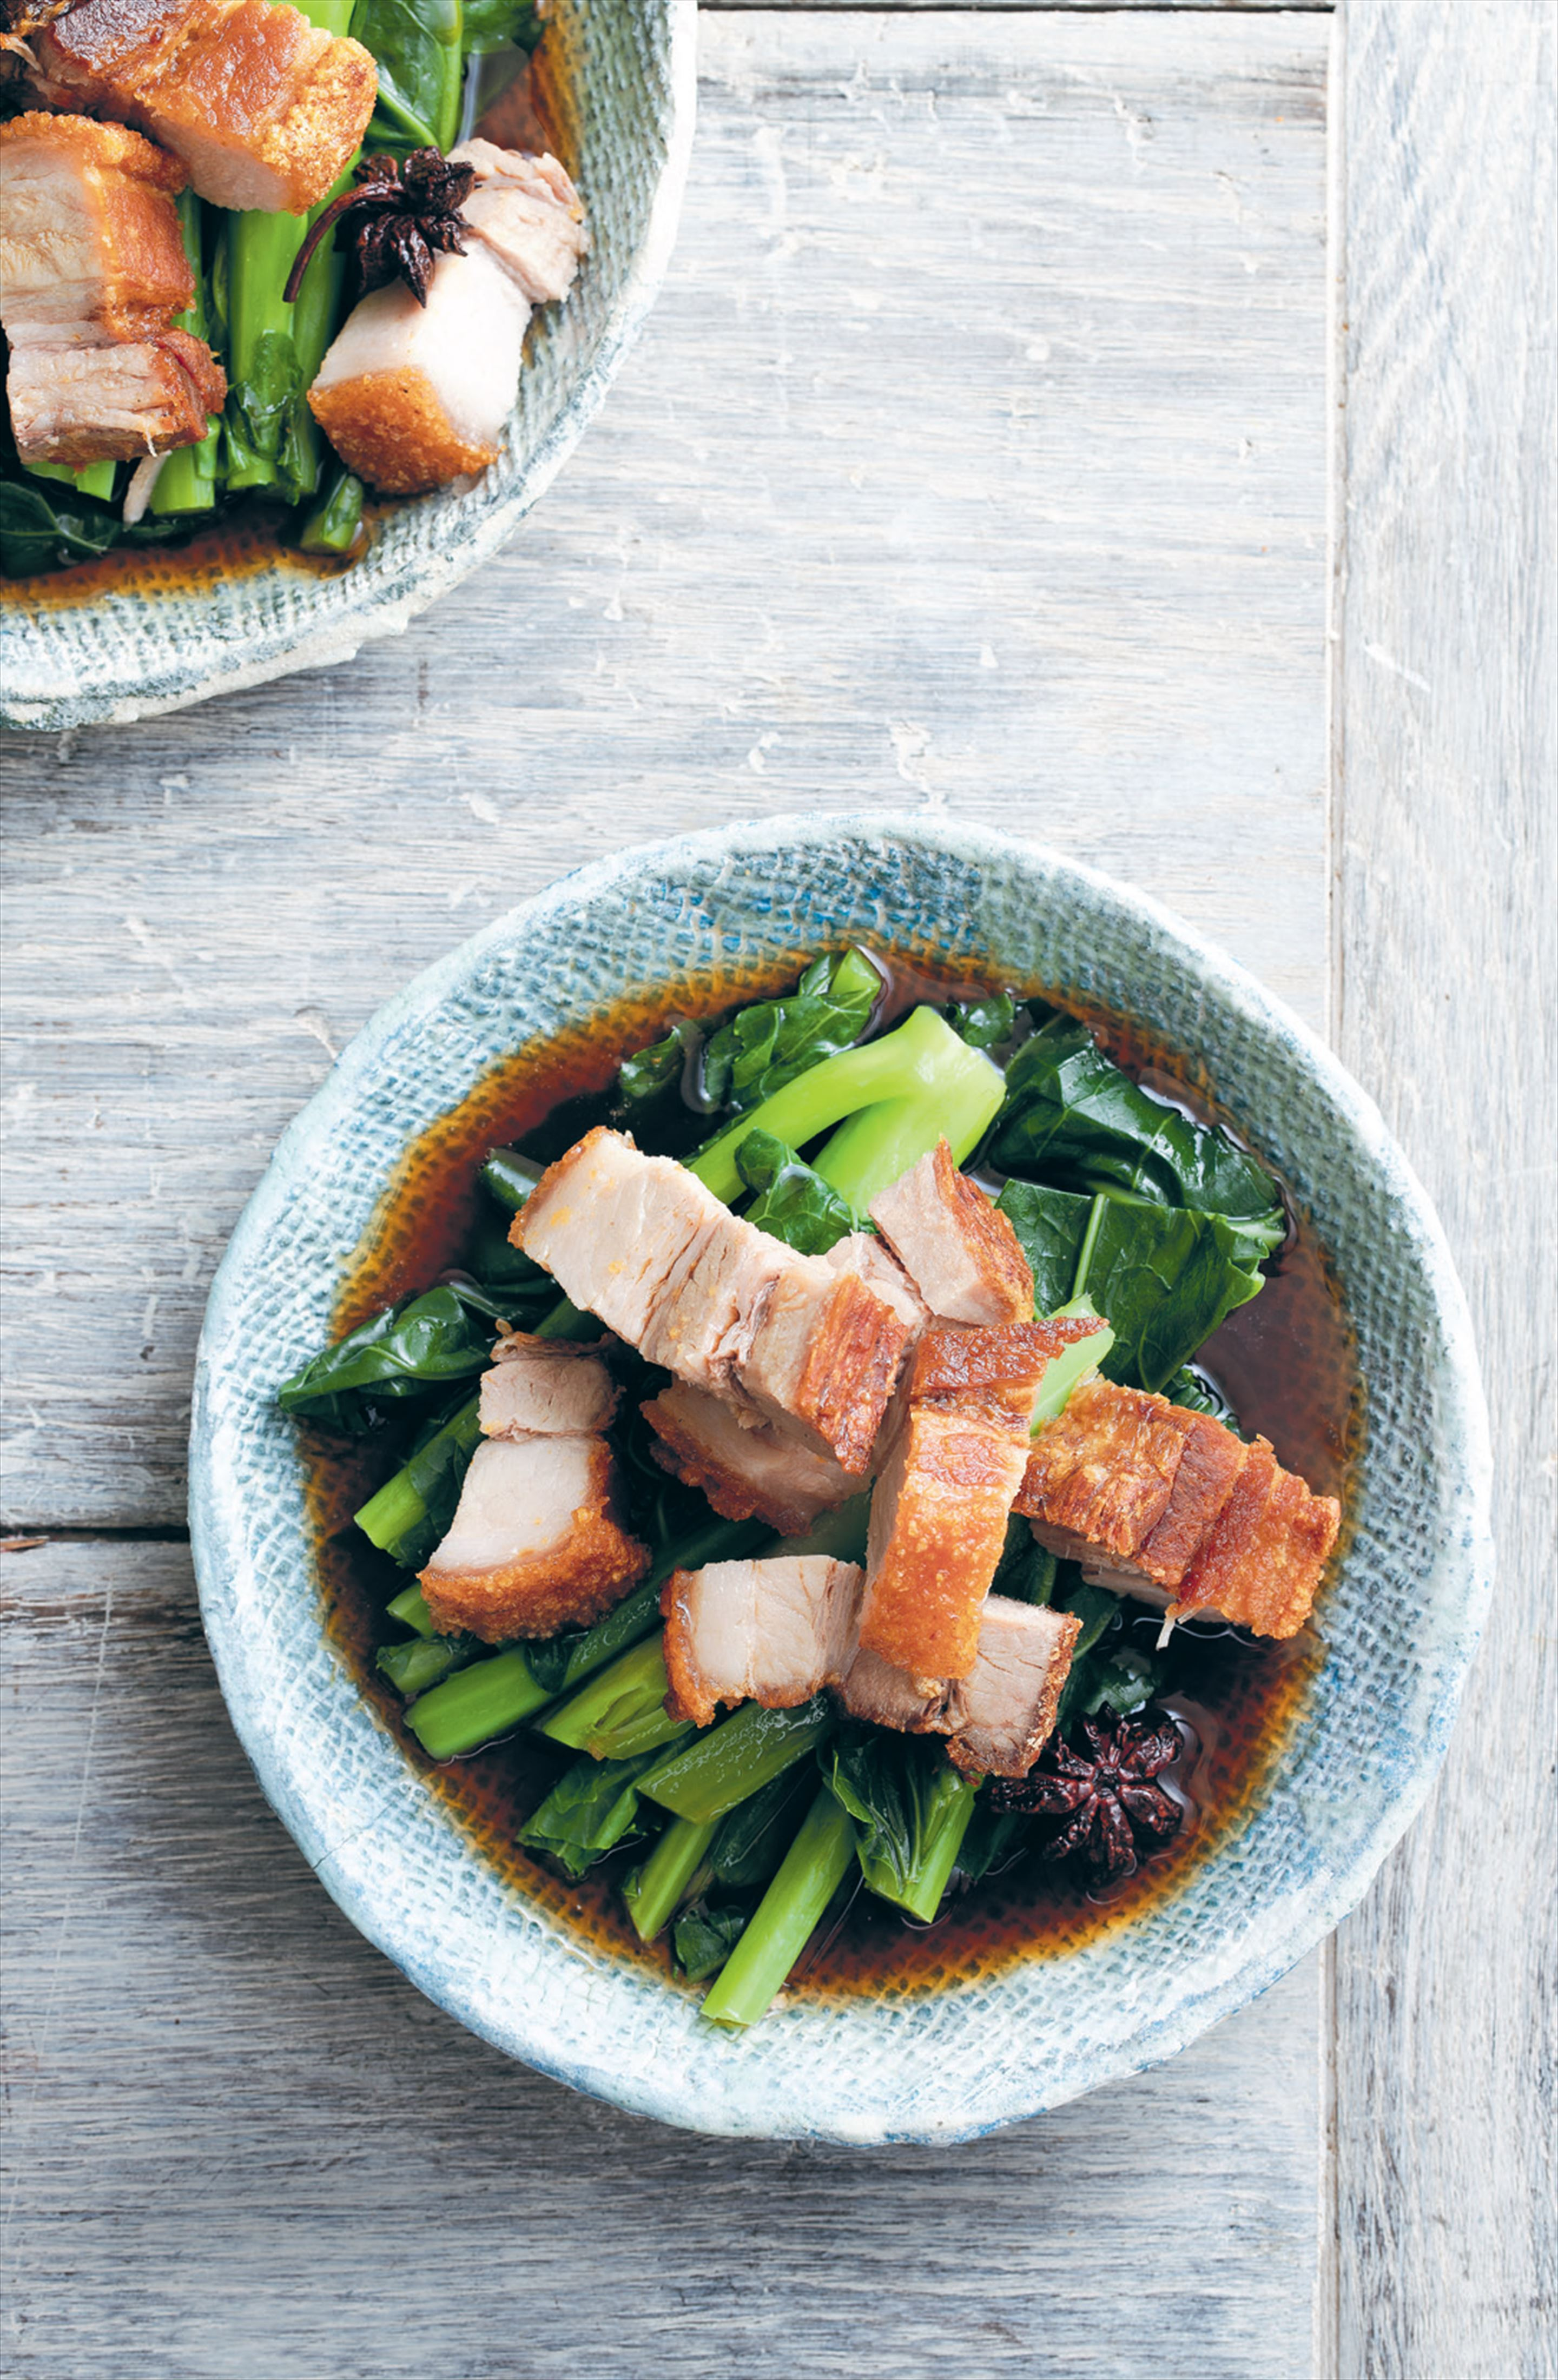 Twice-cooked pork belly with soy, star anise and Chinese broccoli